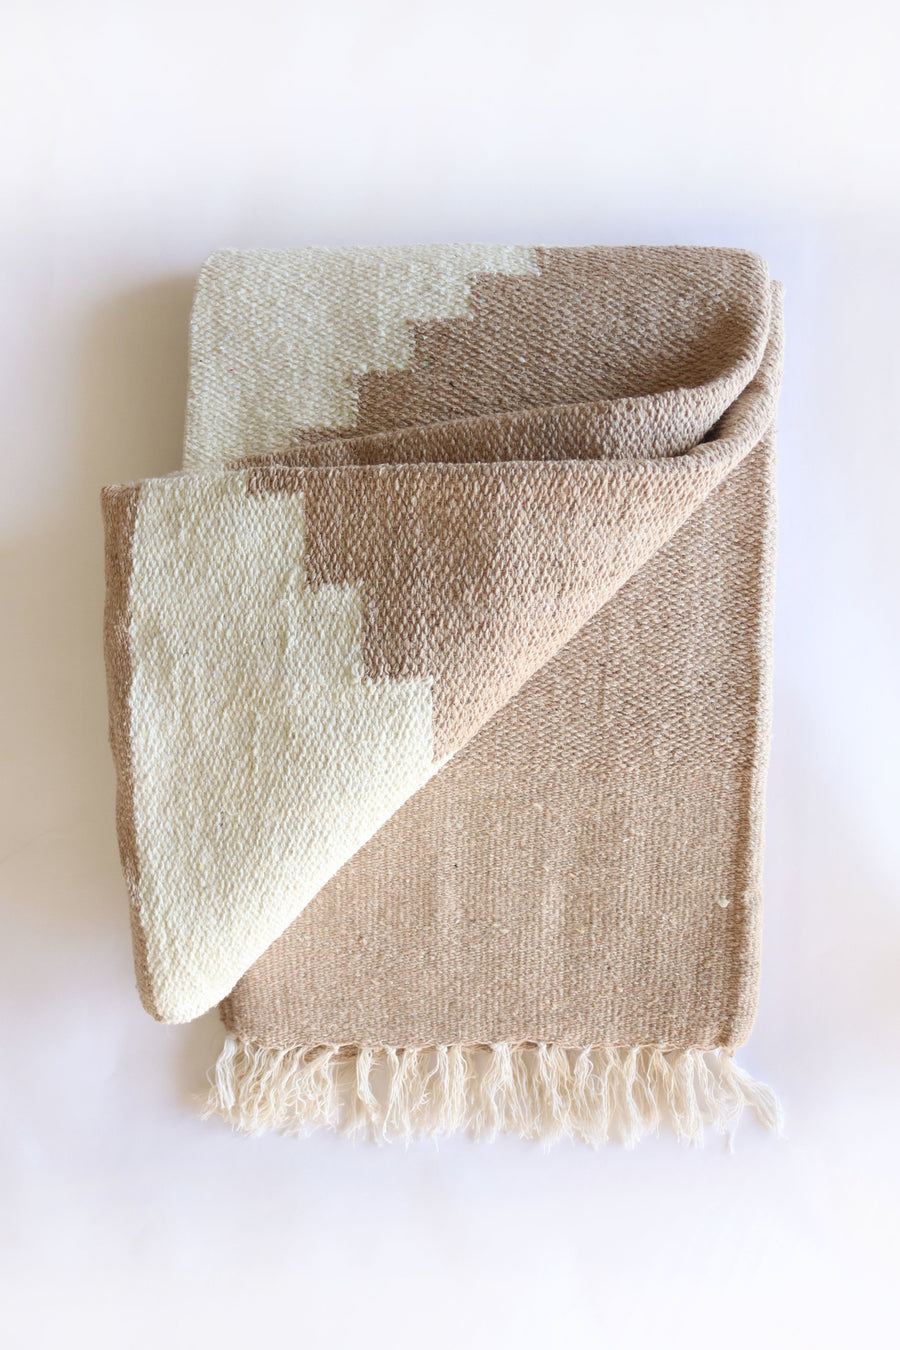 Adobe (Sandstone) XL for King Bed // Handwoven Blanket